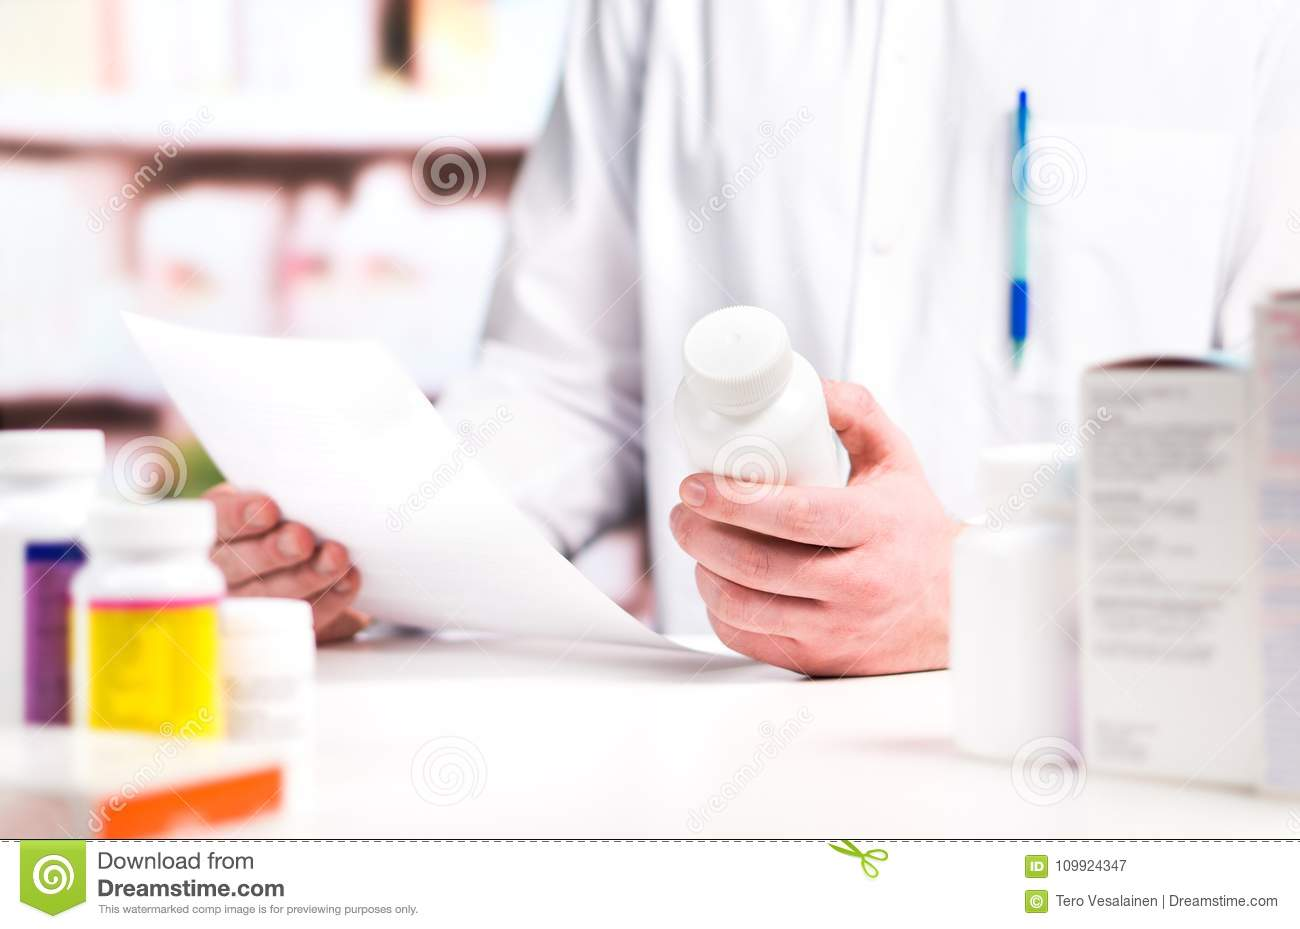 Pharmacist reading prescription with medicine and pill bottle